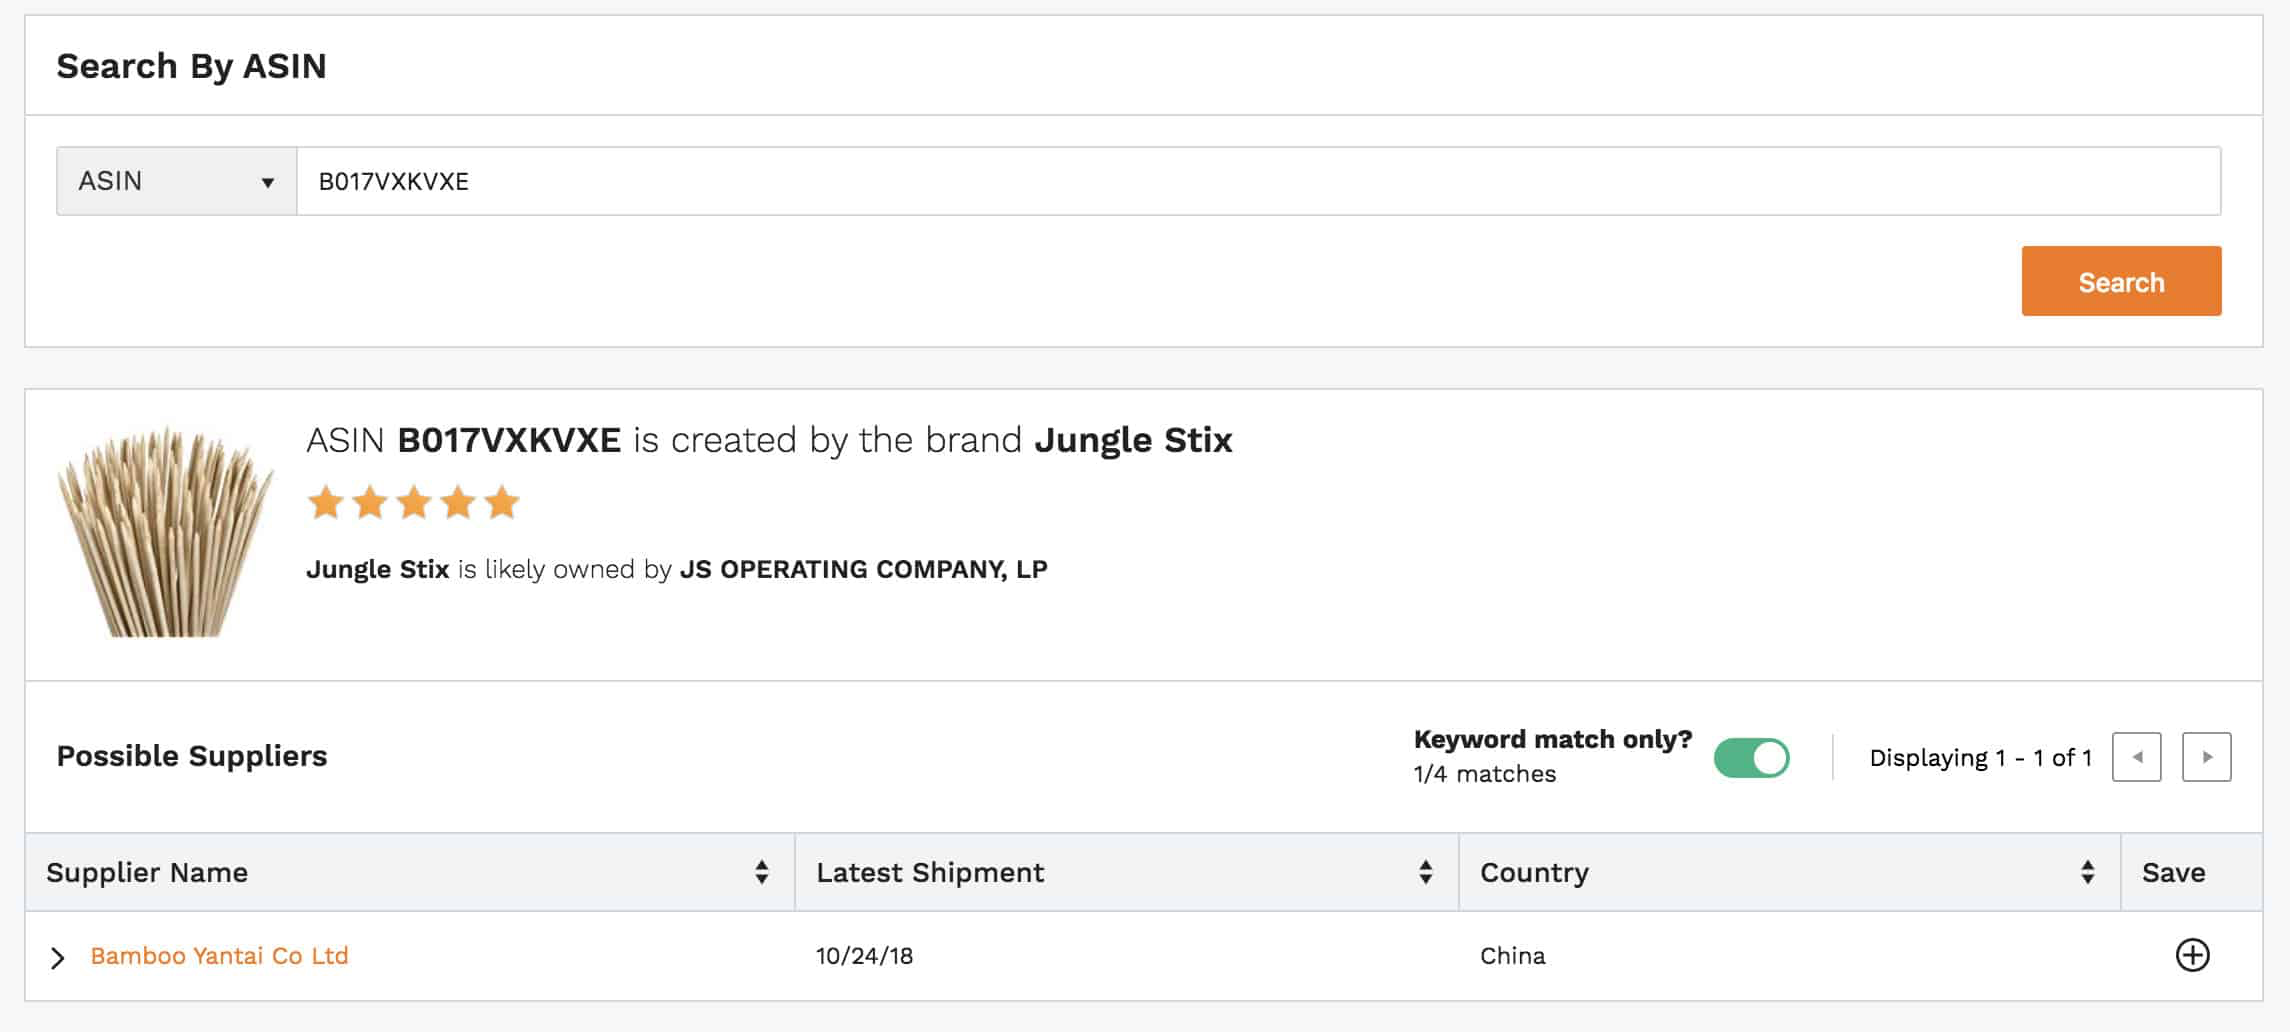 An example of the Search By ASIN functionality (junglescout.com)